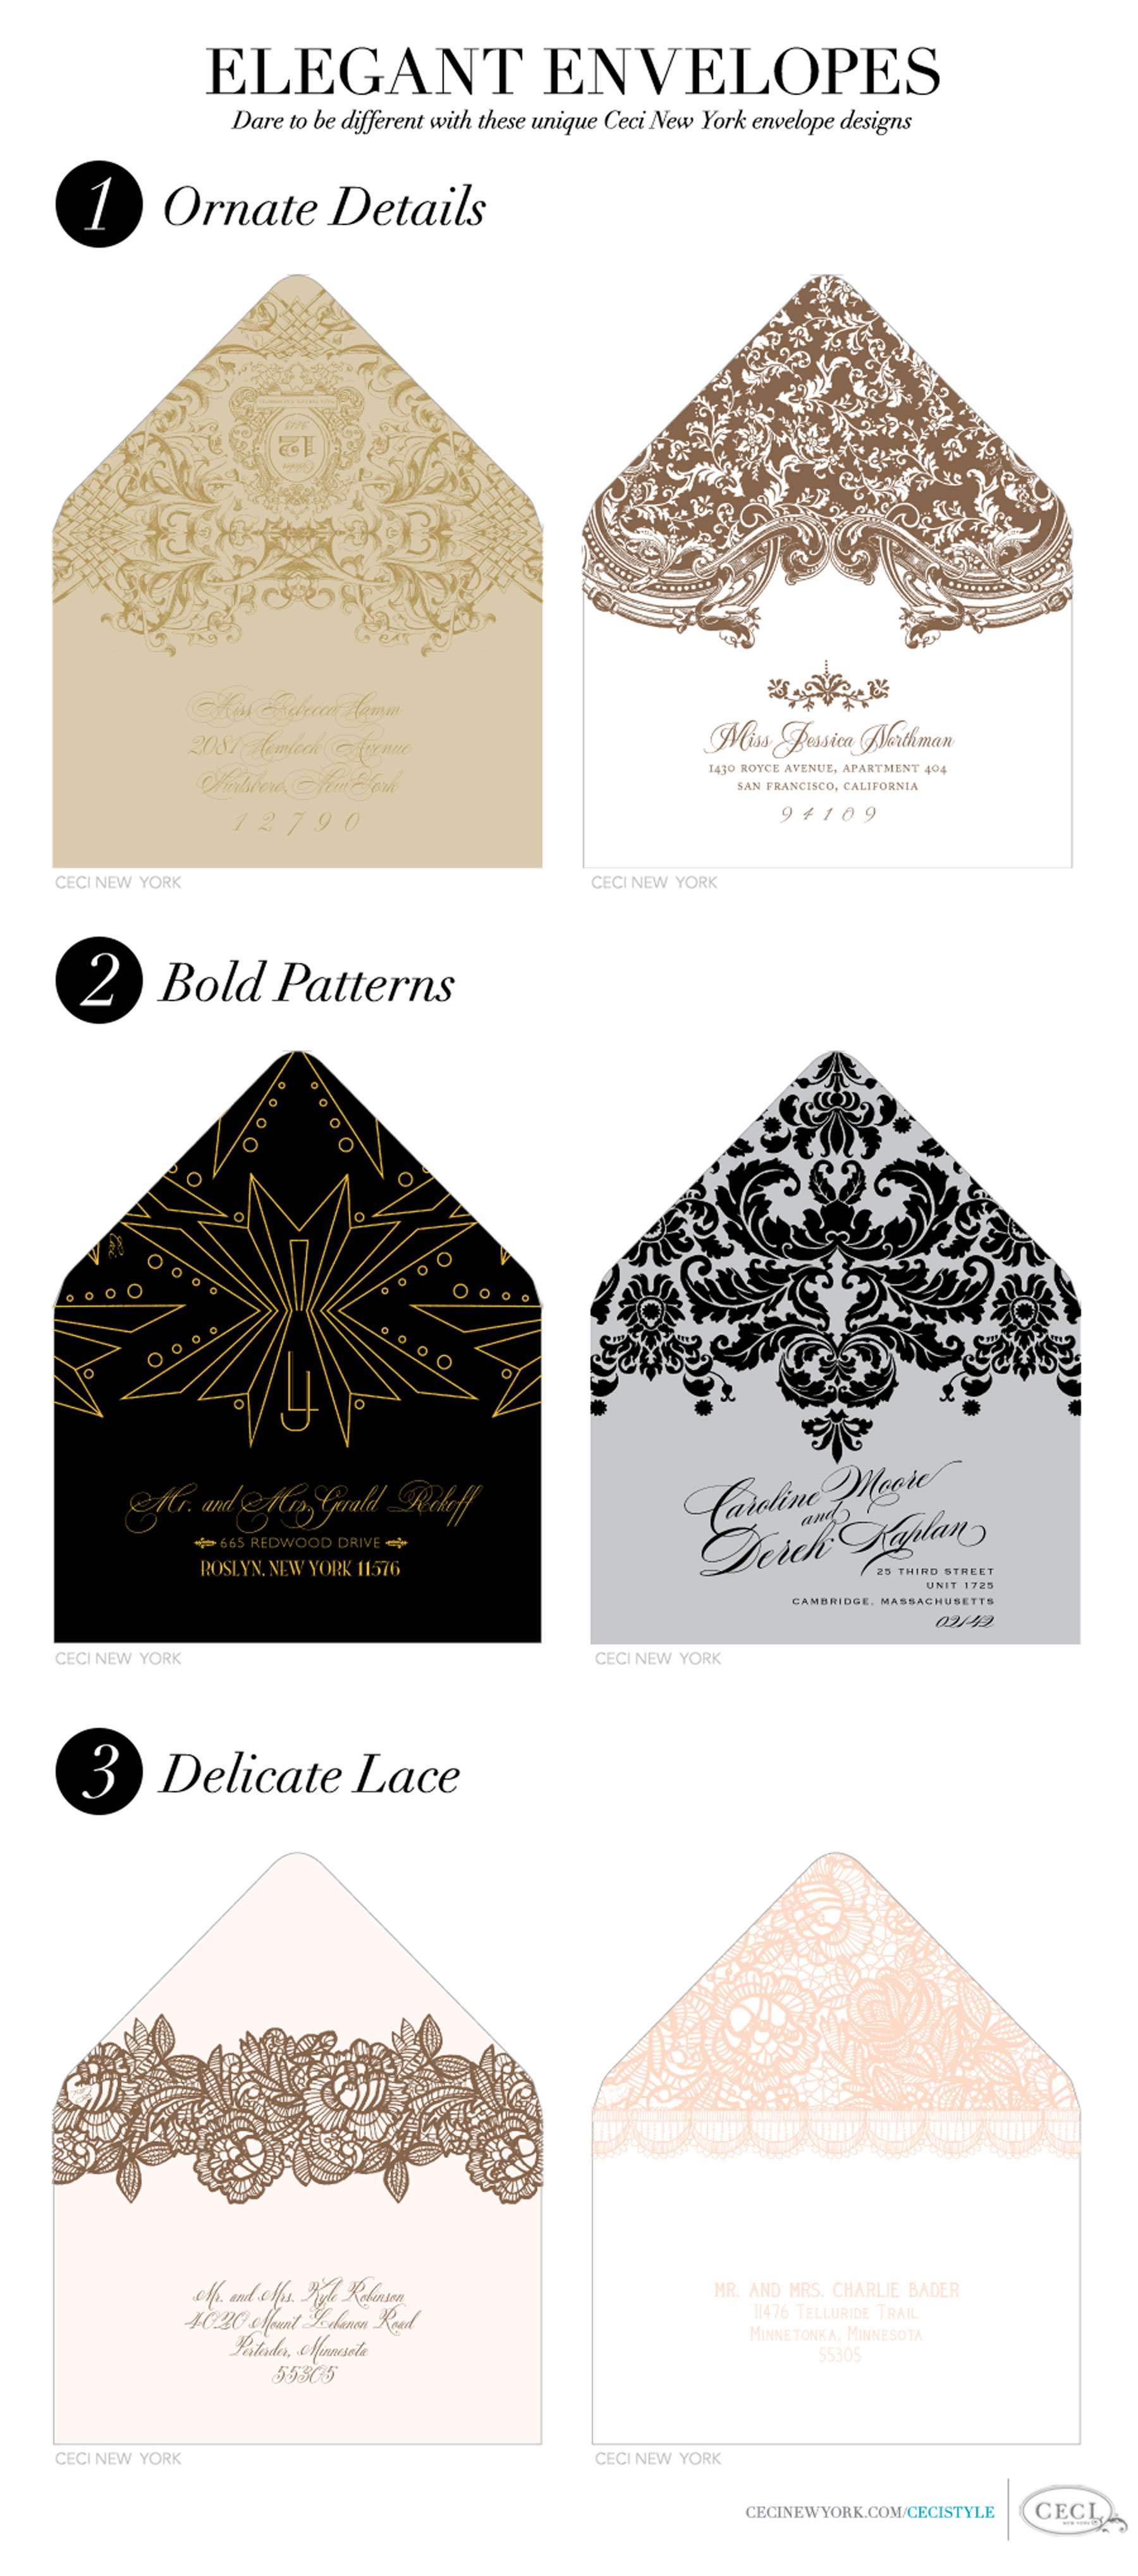 Designs of envelopes for marriage images for Cool envelope ideas